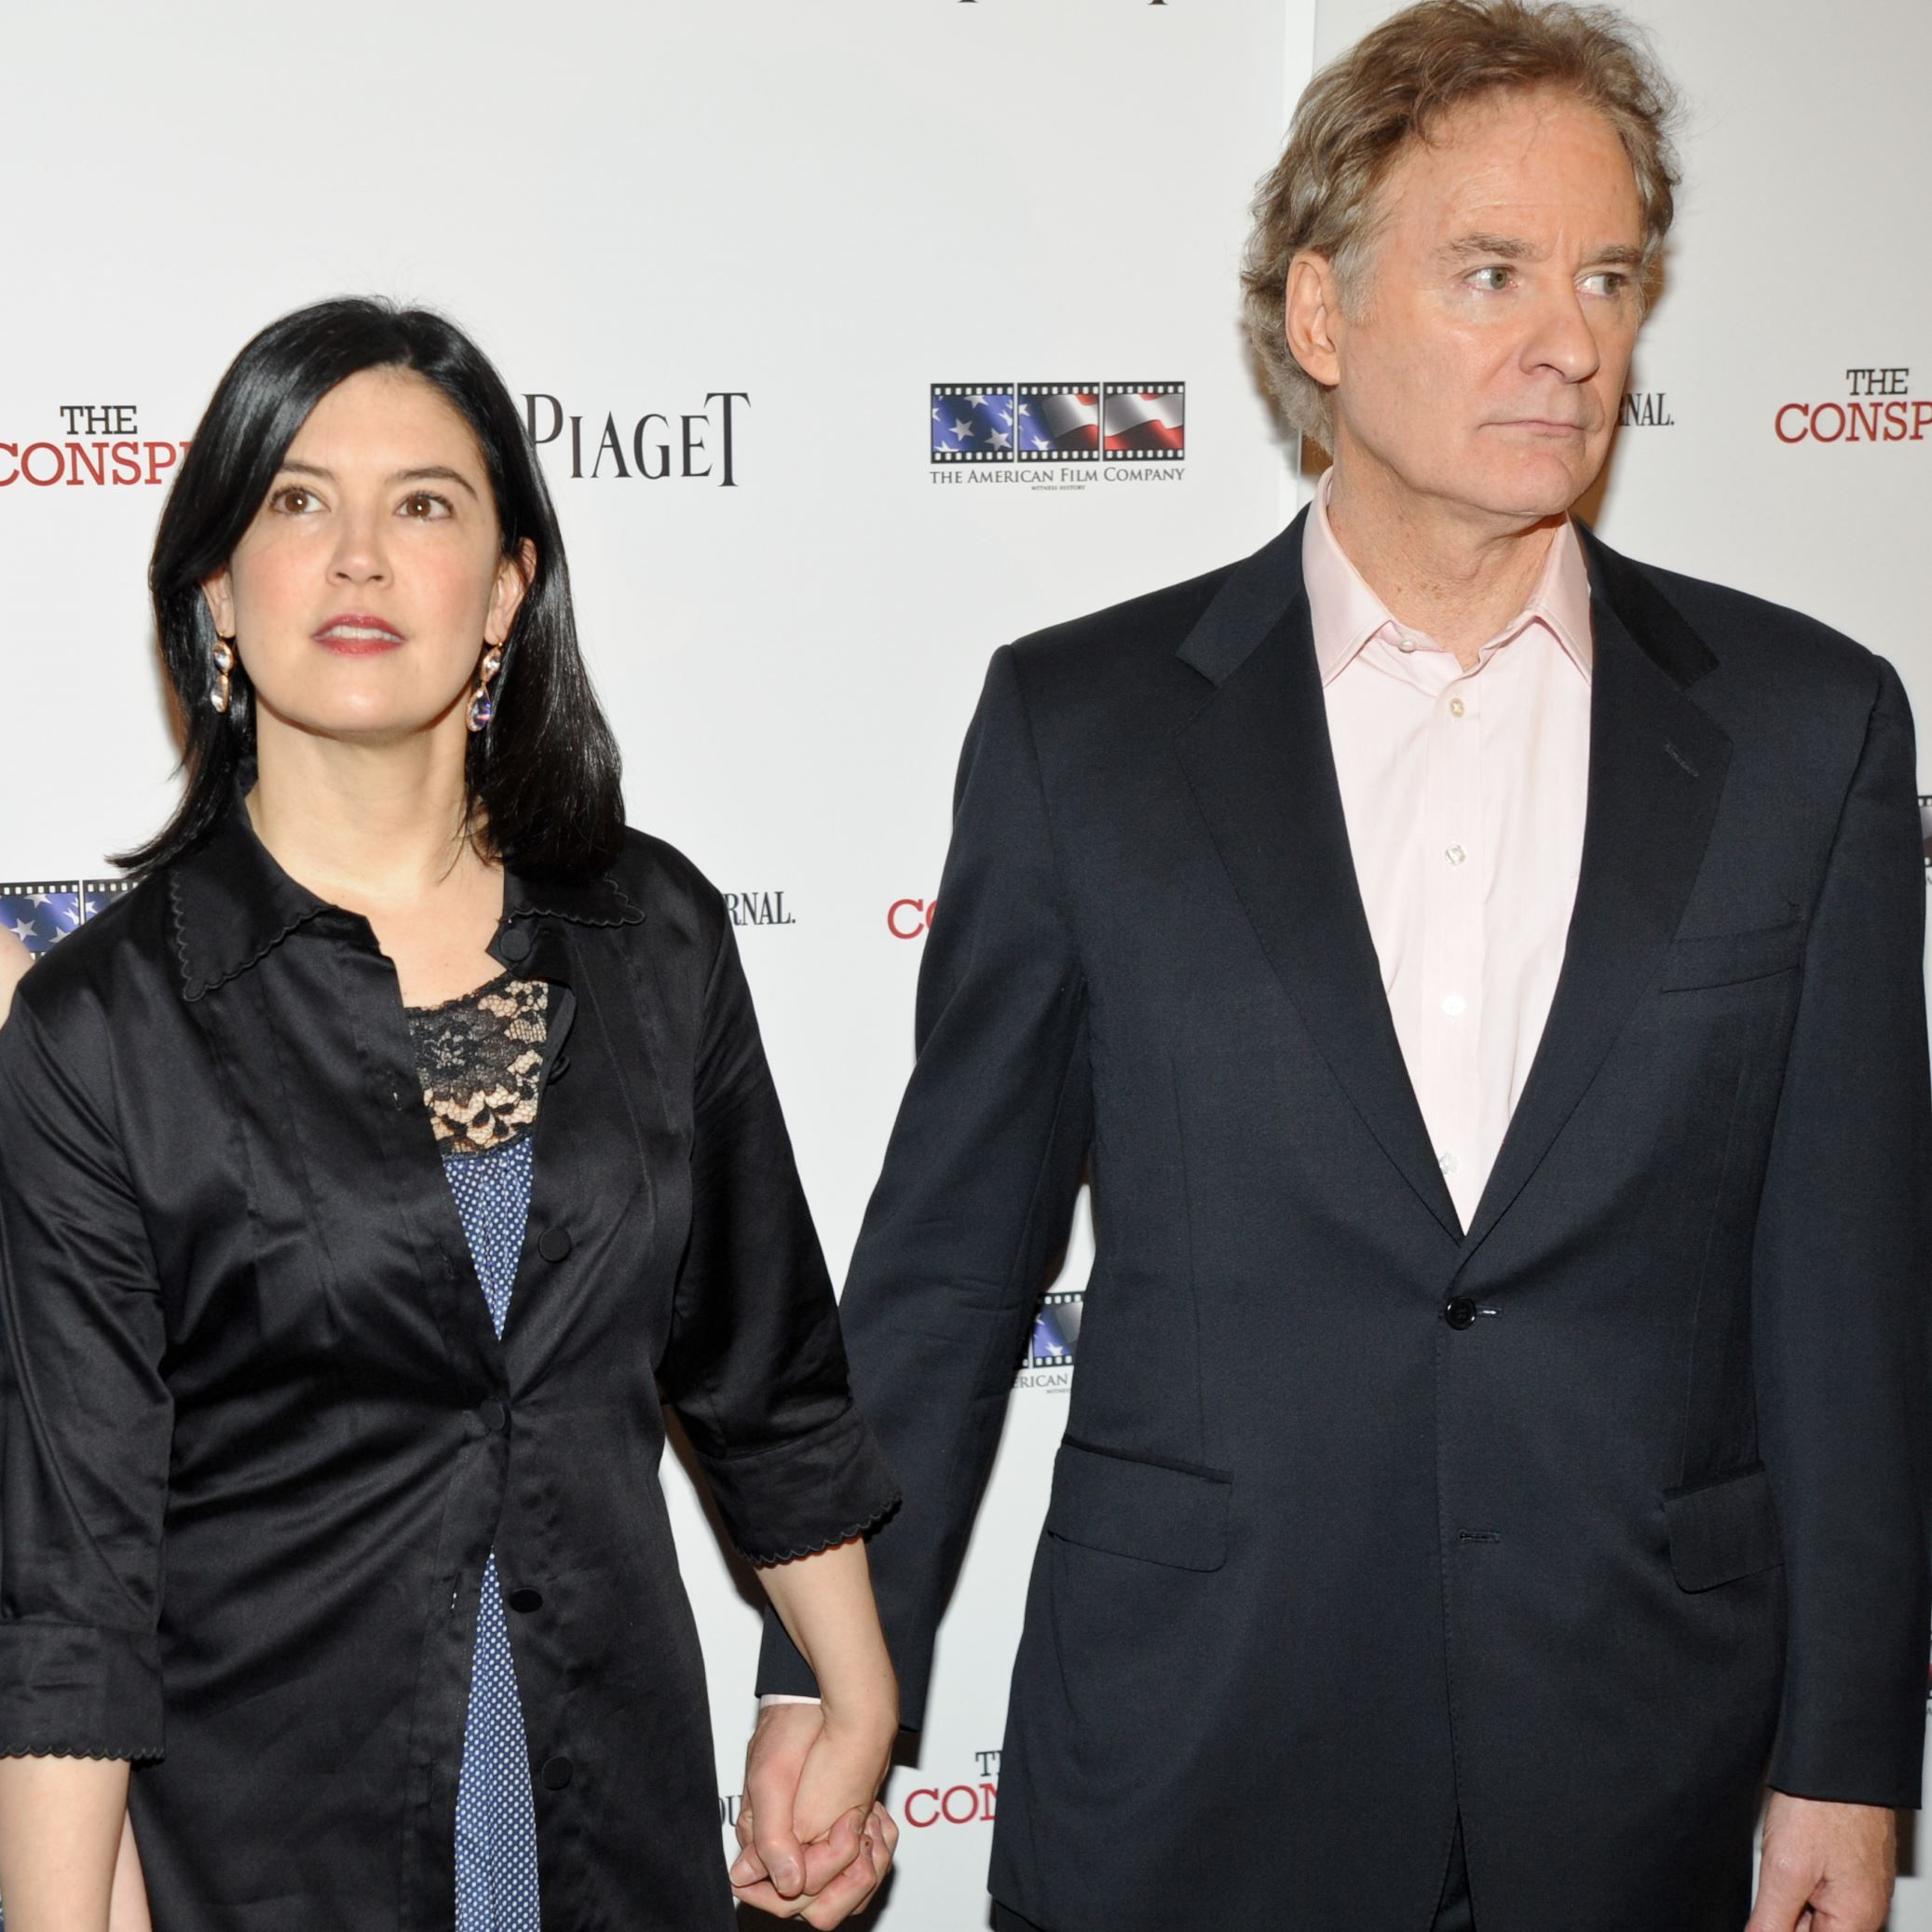 Remember these celebrity crushes look at them now phoebe for Phoebe cates and kevin kline wedding photos